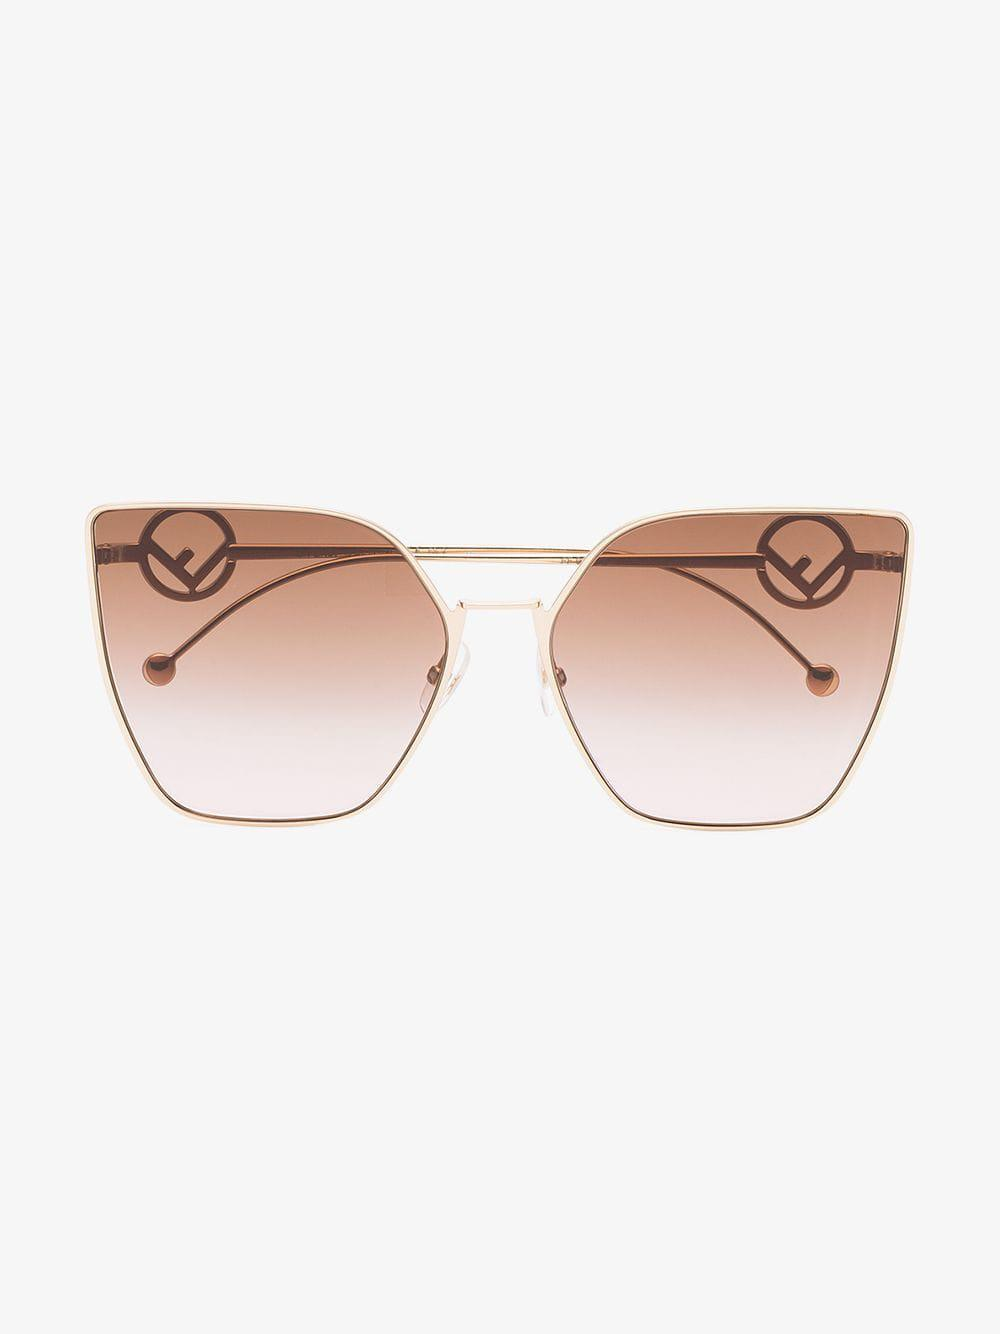 29300276594a Fendi Oversized Square Logo Arm Sunglasses in Pink - Lyst